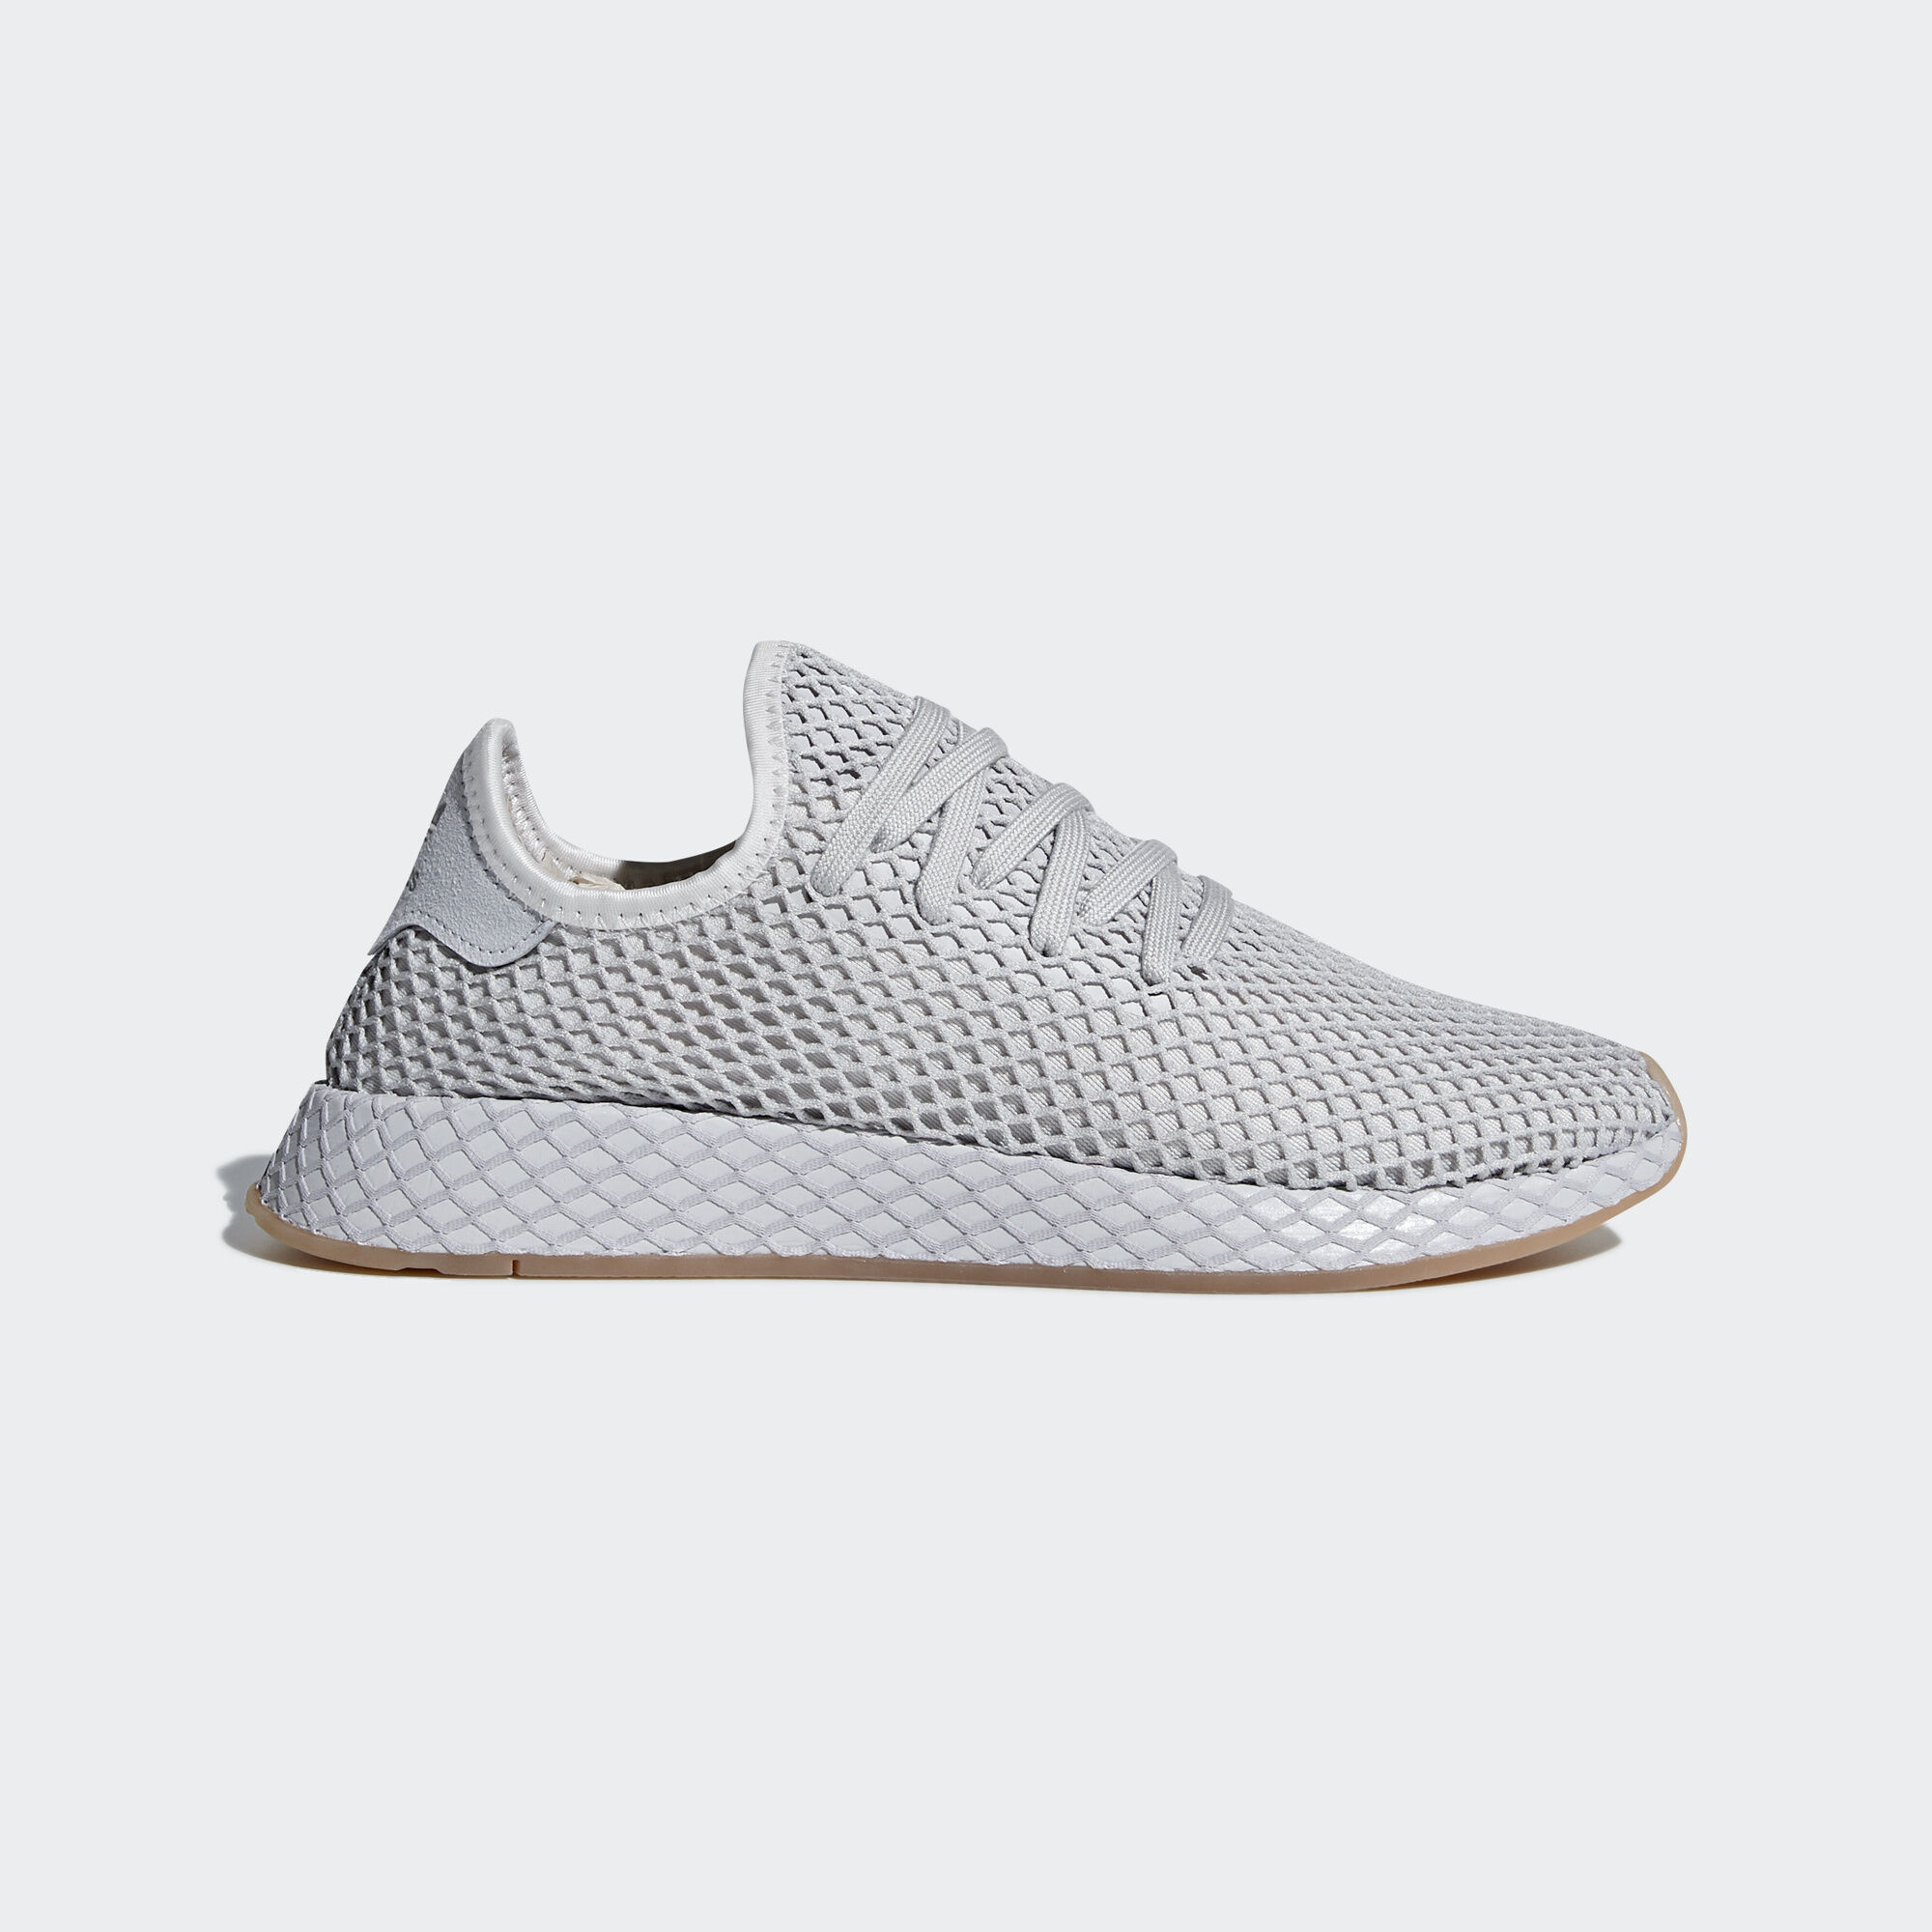 Adidas East Asiamiddle Shoes Grey Runner Deerupt 7Xrqxw7g